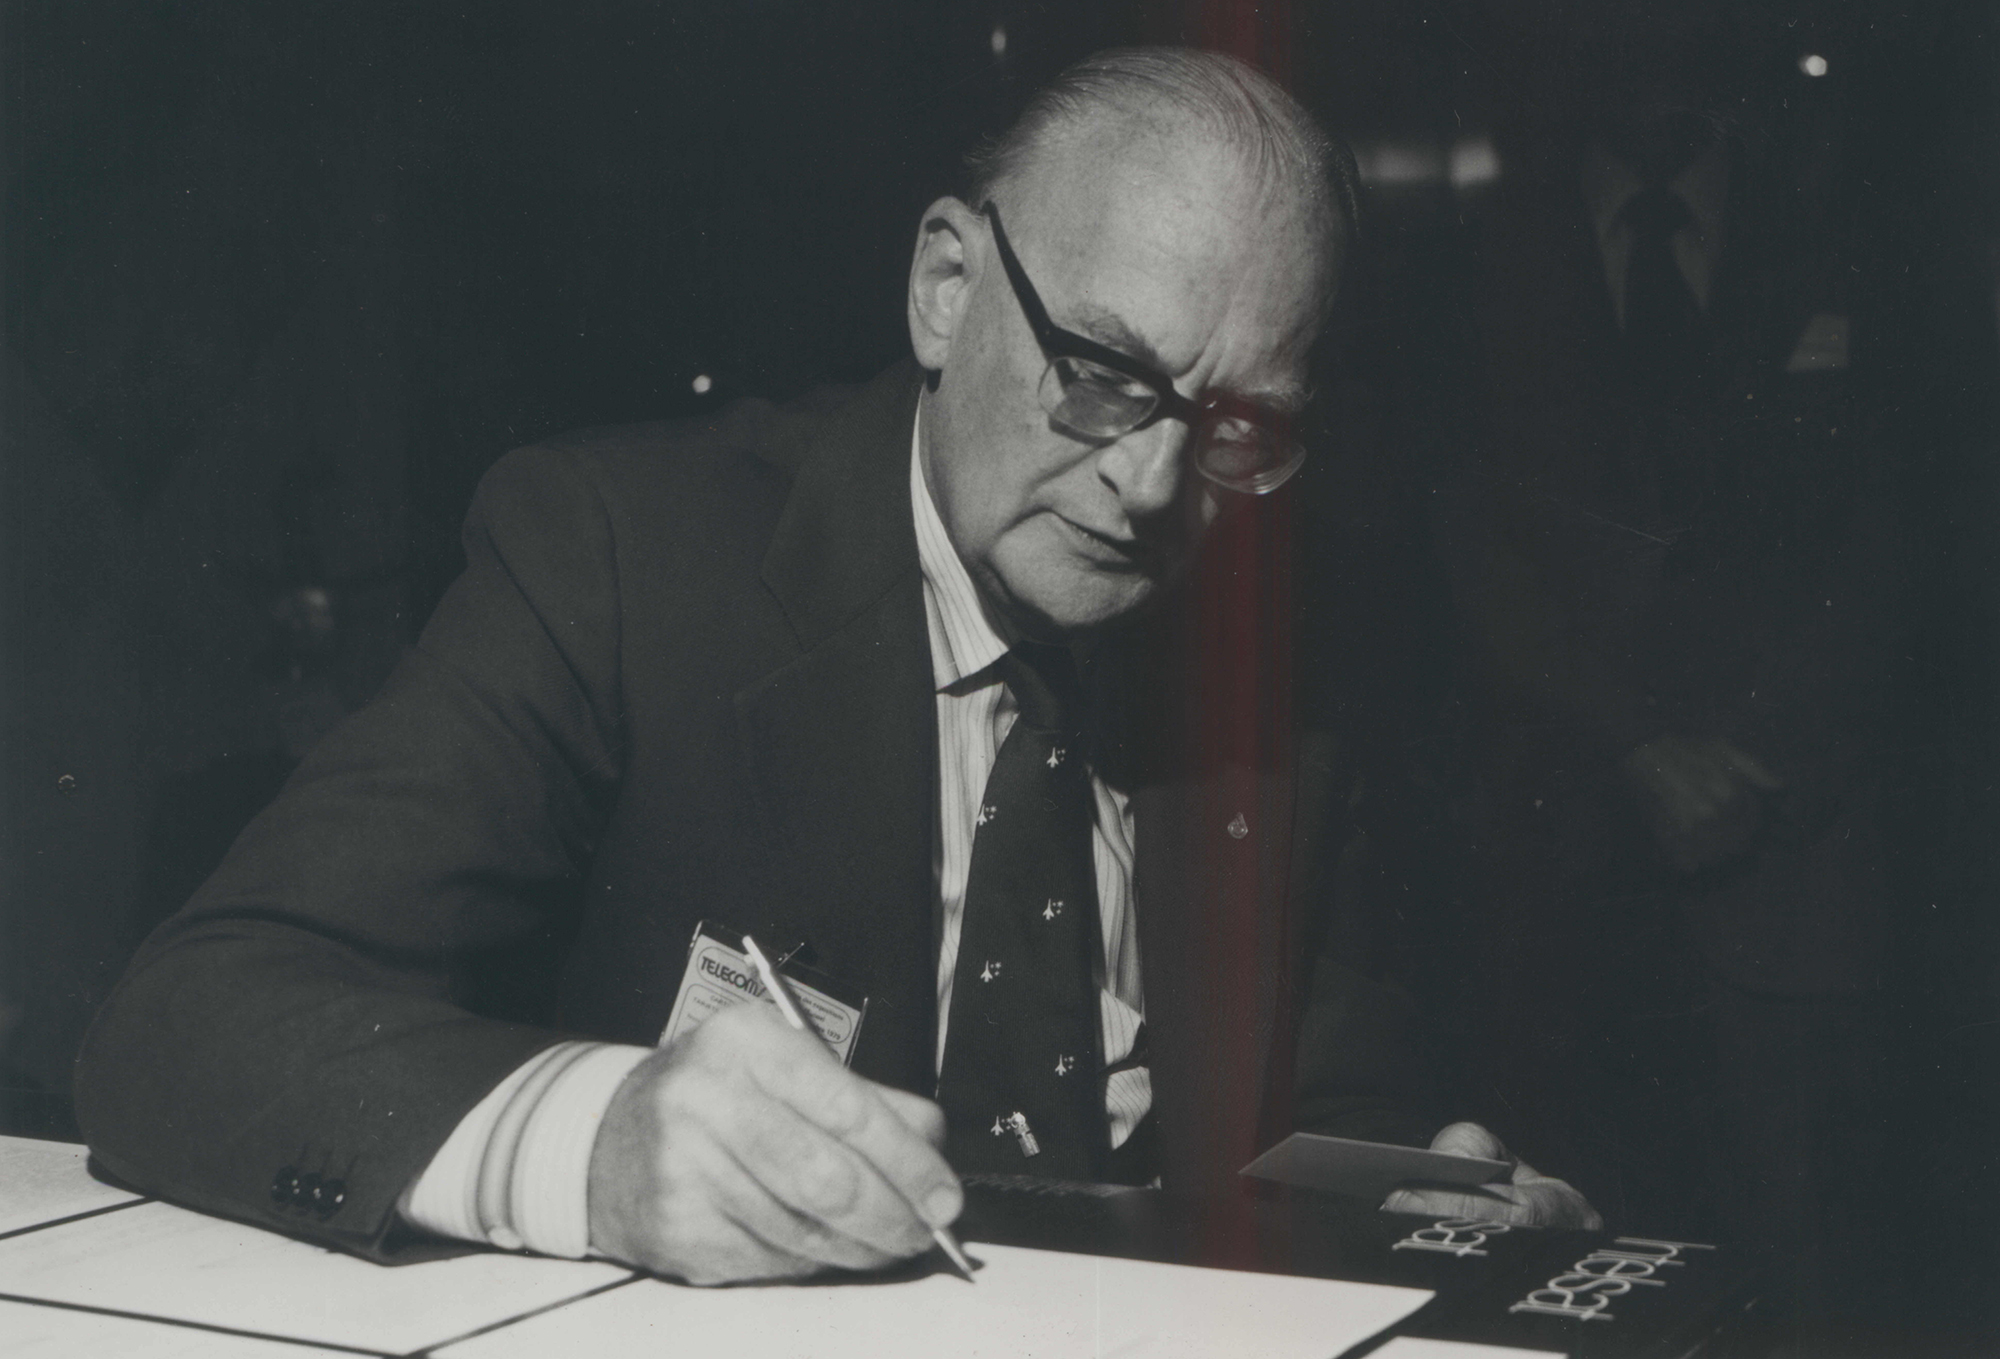 Science fiction writer Arthur C Clarke at a book signing circa 1992